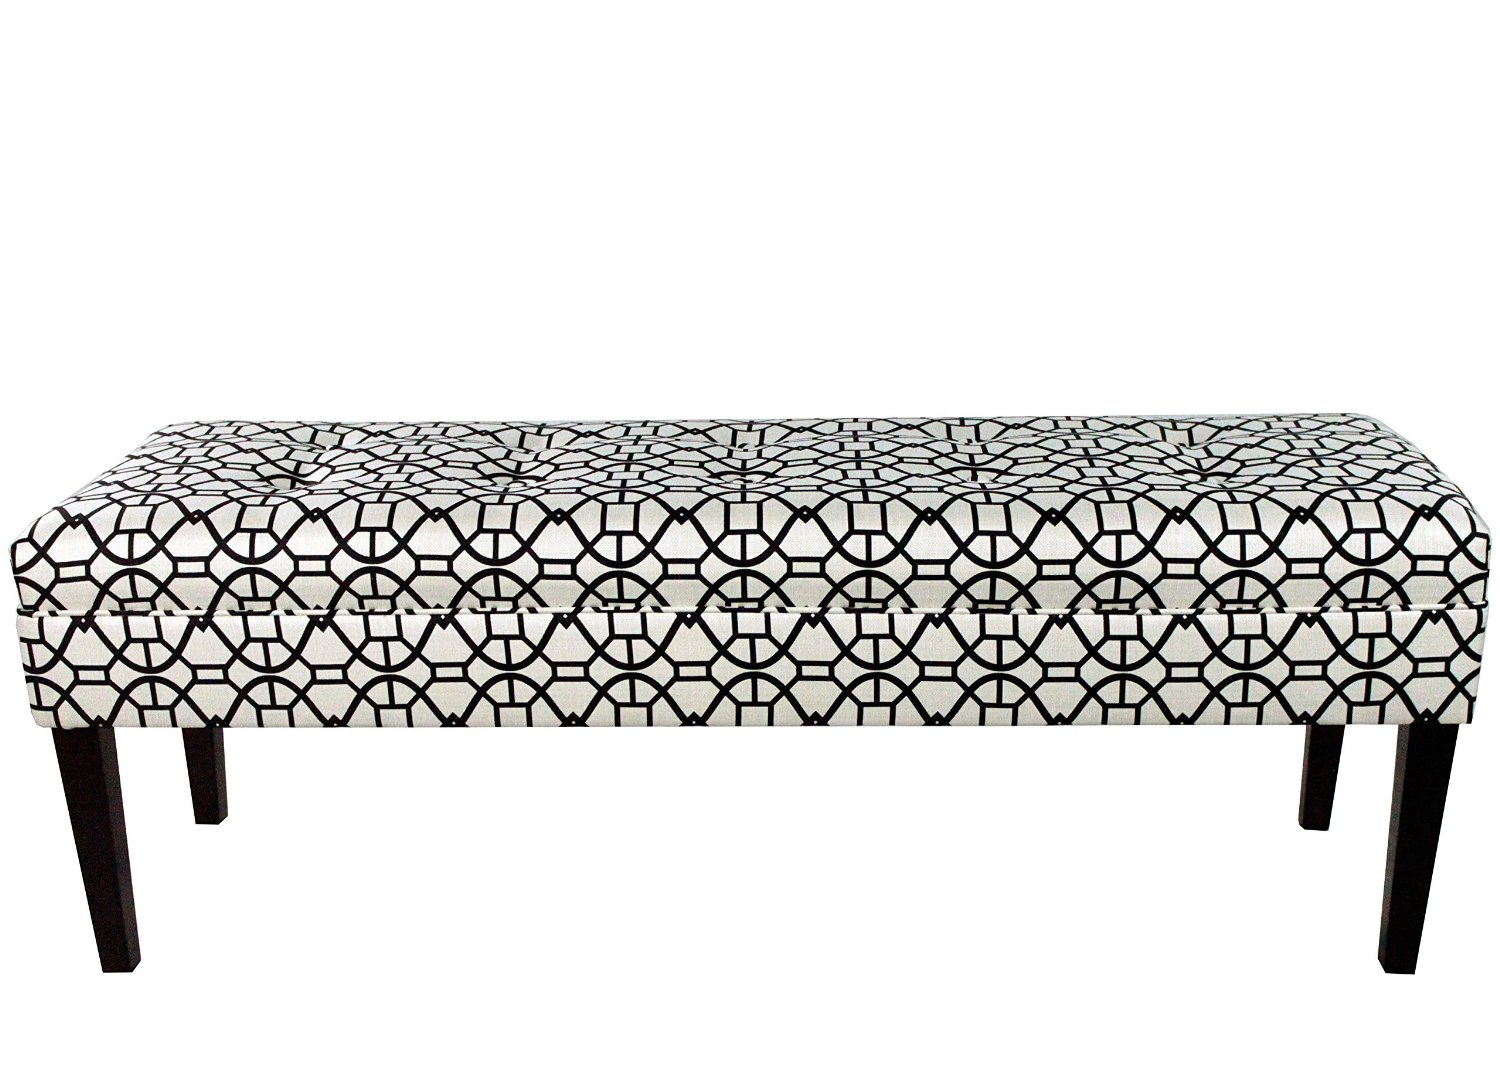 MJL Furniture Designs Kaya Collection Upholstered and Padded Button Tufted Accent Bedroom Bench, Noah Series, Windsor